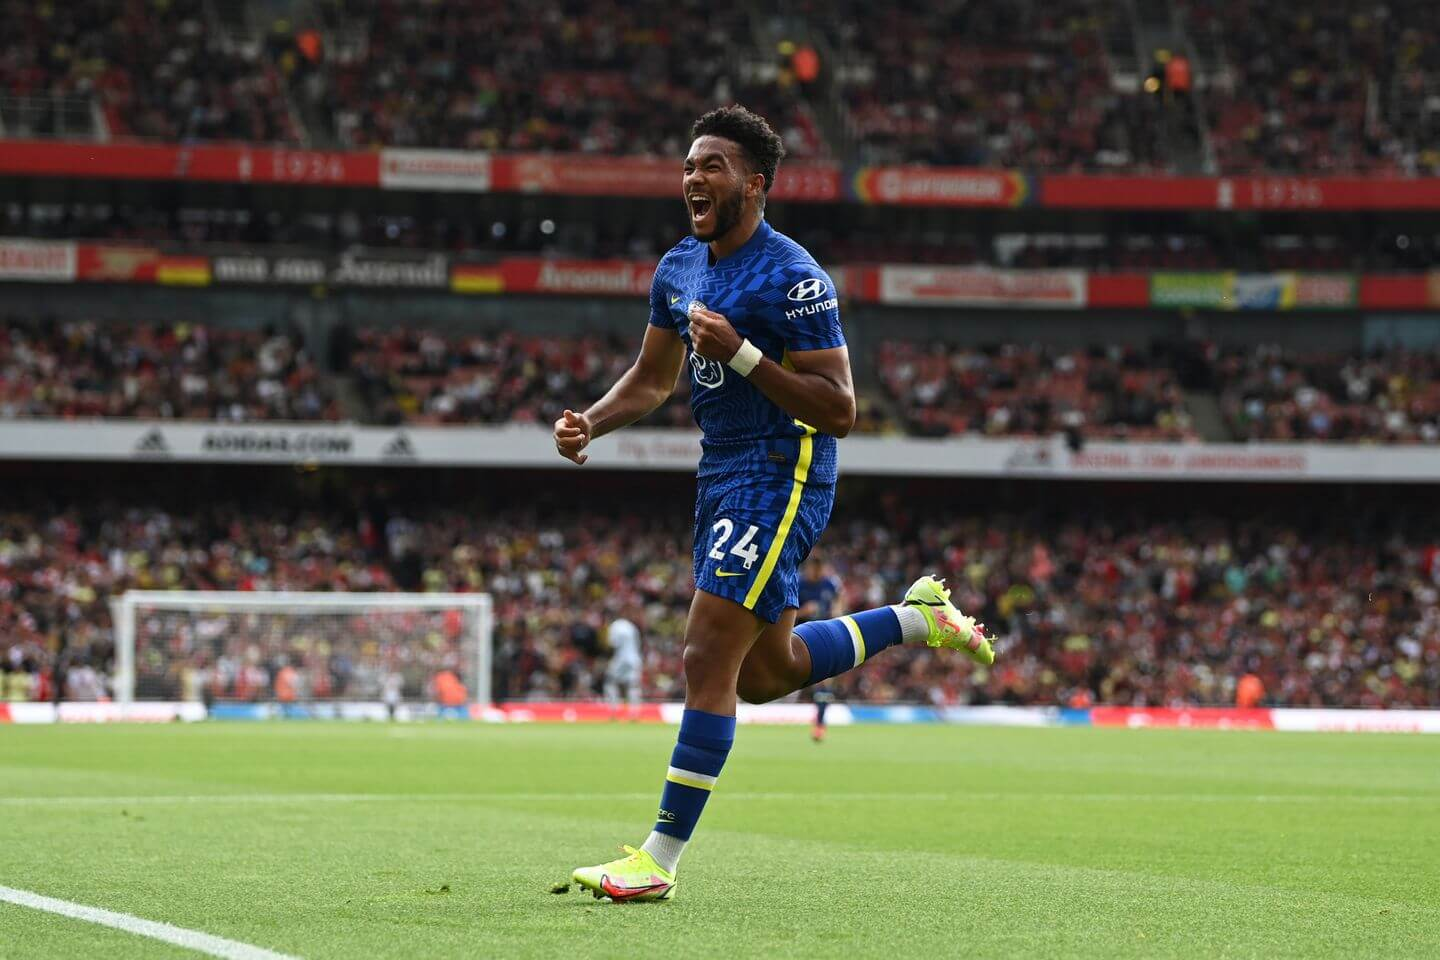 Arsenal vs. Chelsea live updates, result and score: Latest after Lukaku and James score to win Premier League game